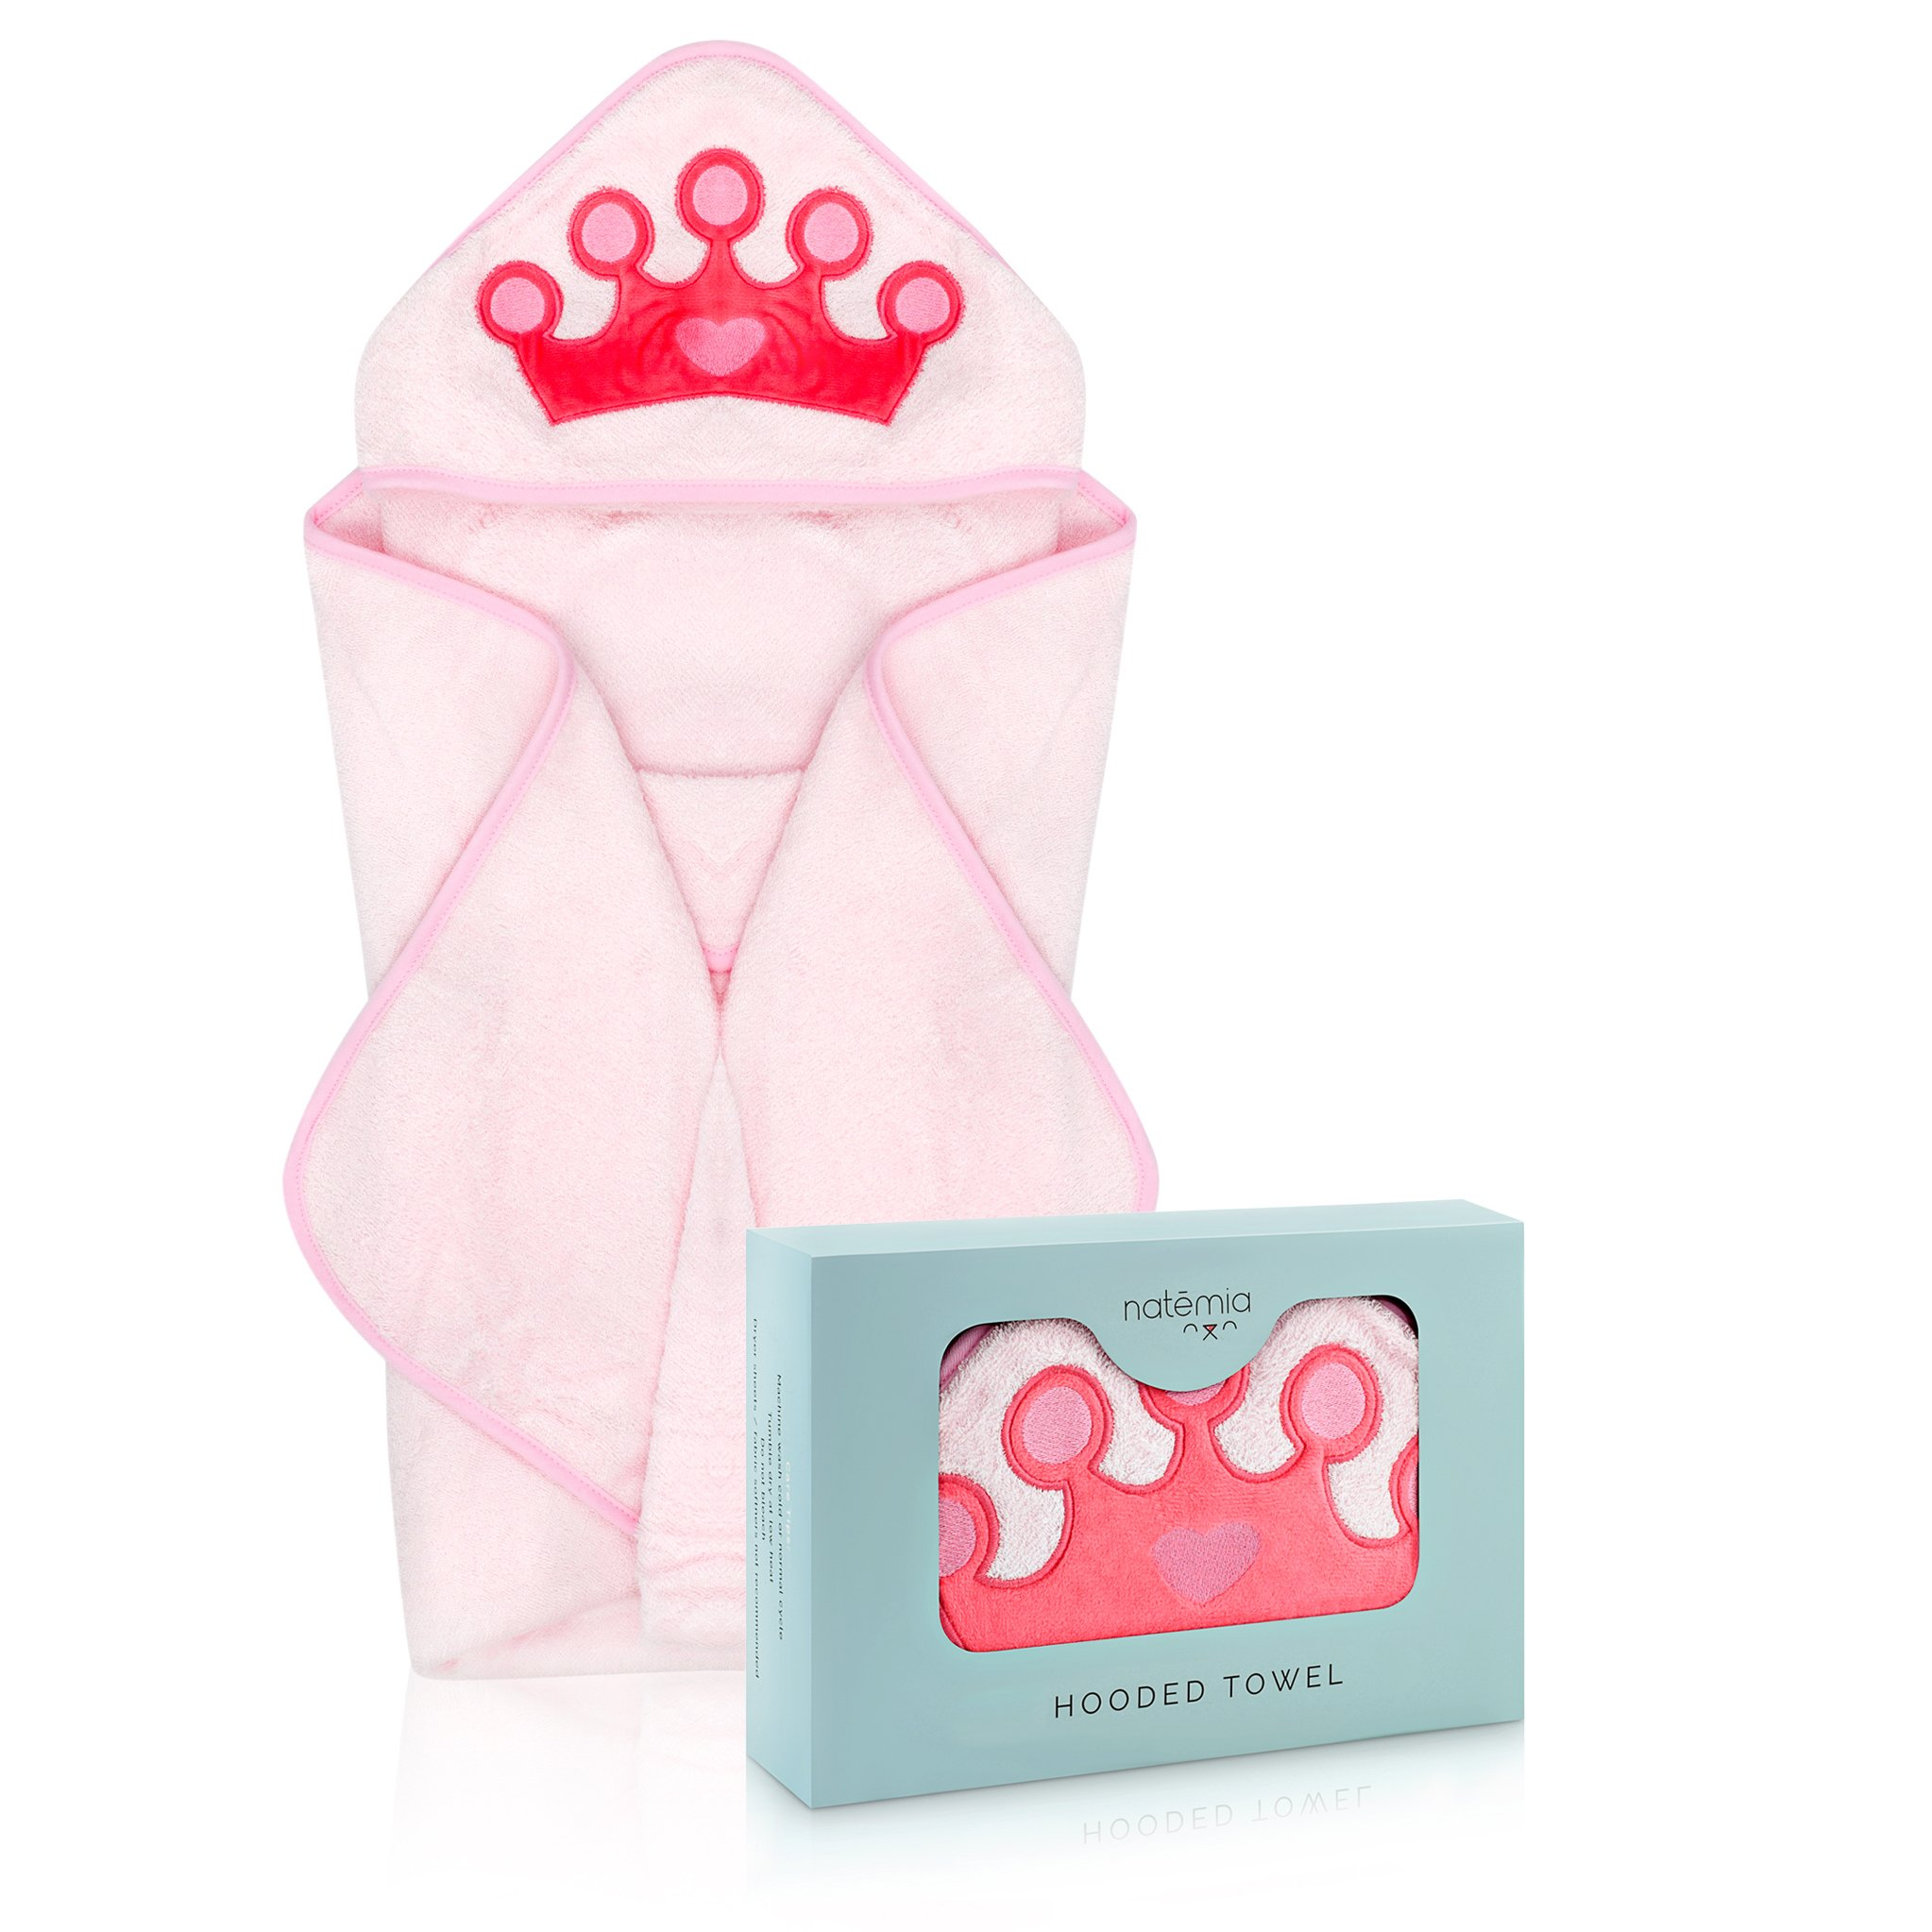 Natemia Princess Rayon from Bamboo Hooded Towel for Kids | Highly Absorbent, Plush, Soft Baby Towel | for Girls,Toddlers, Newborns & Infants | Great Baby Shower/Registry Gift